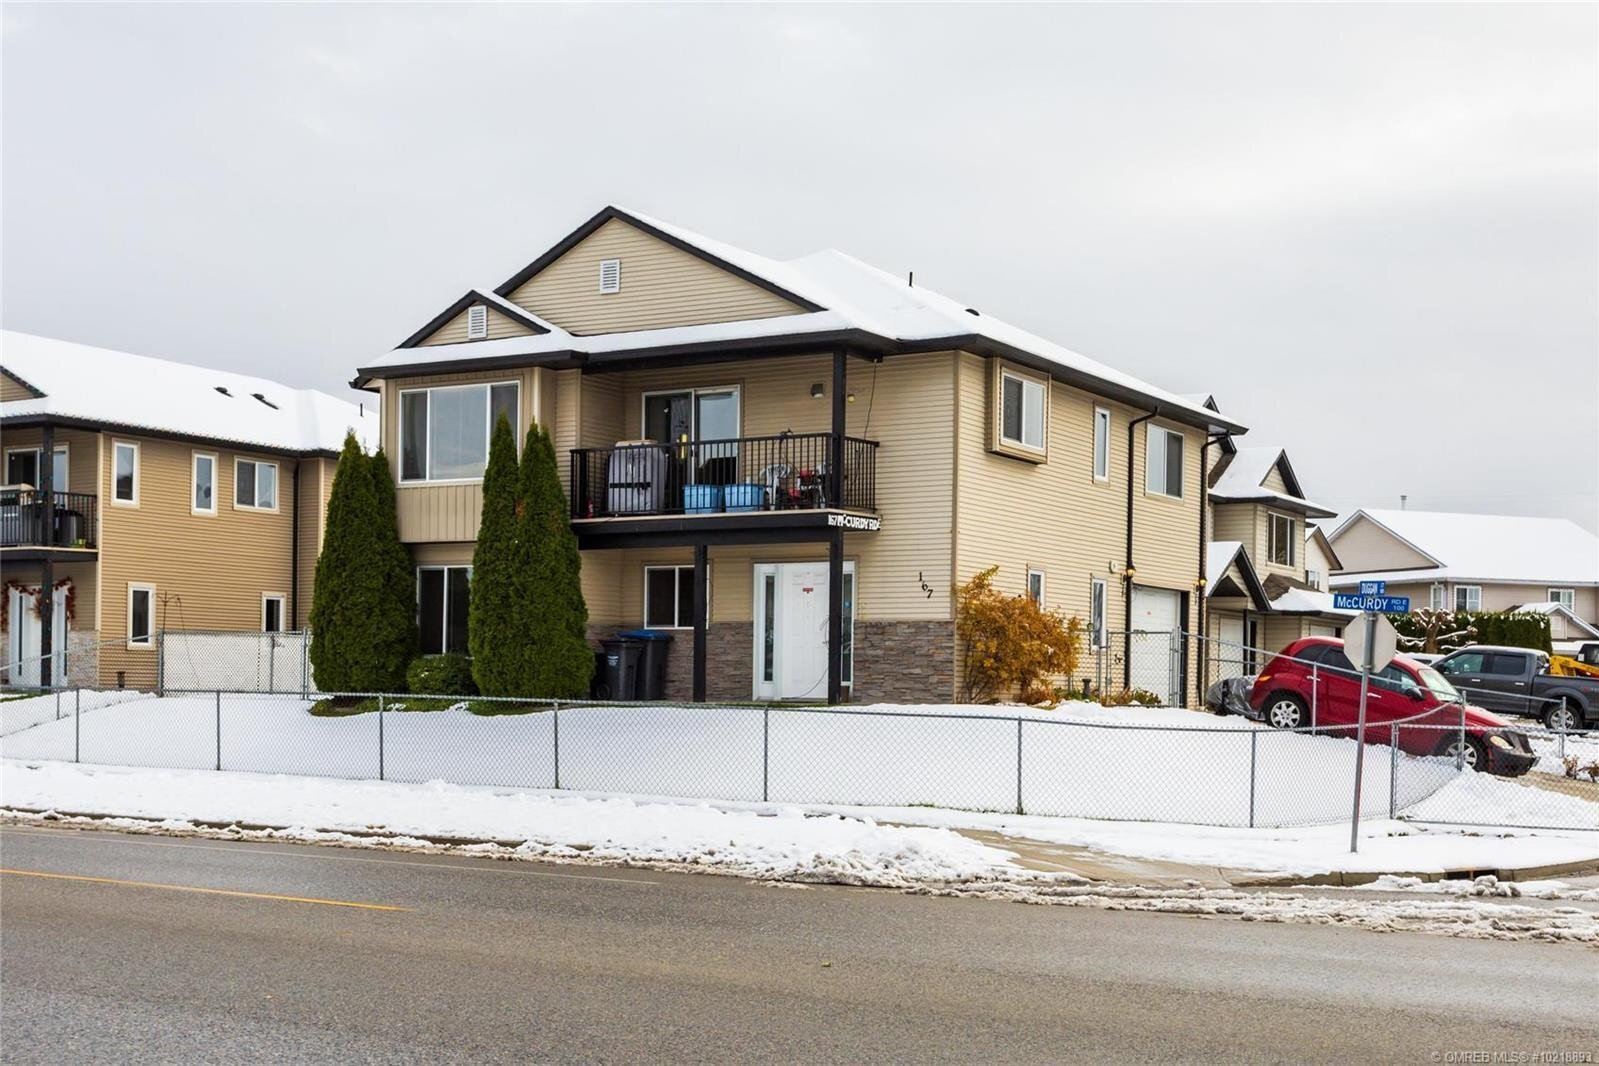 House for sale at 167 Mccurdy Rd East Kelowna British Columbia - MLS: 10218893